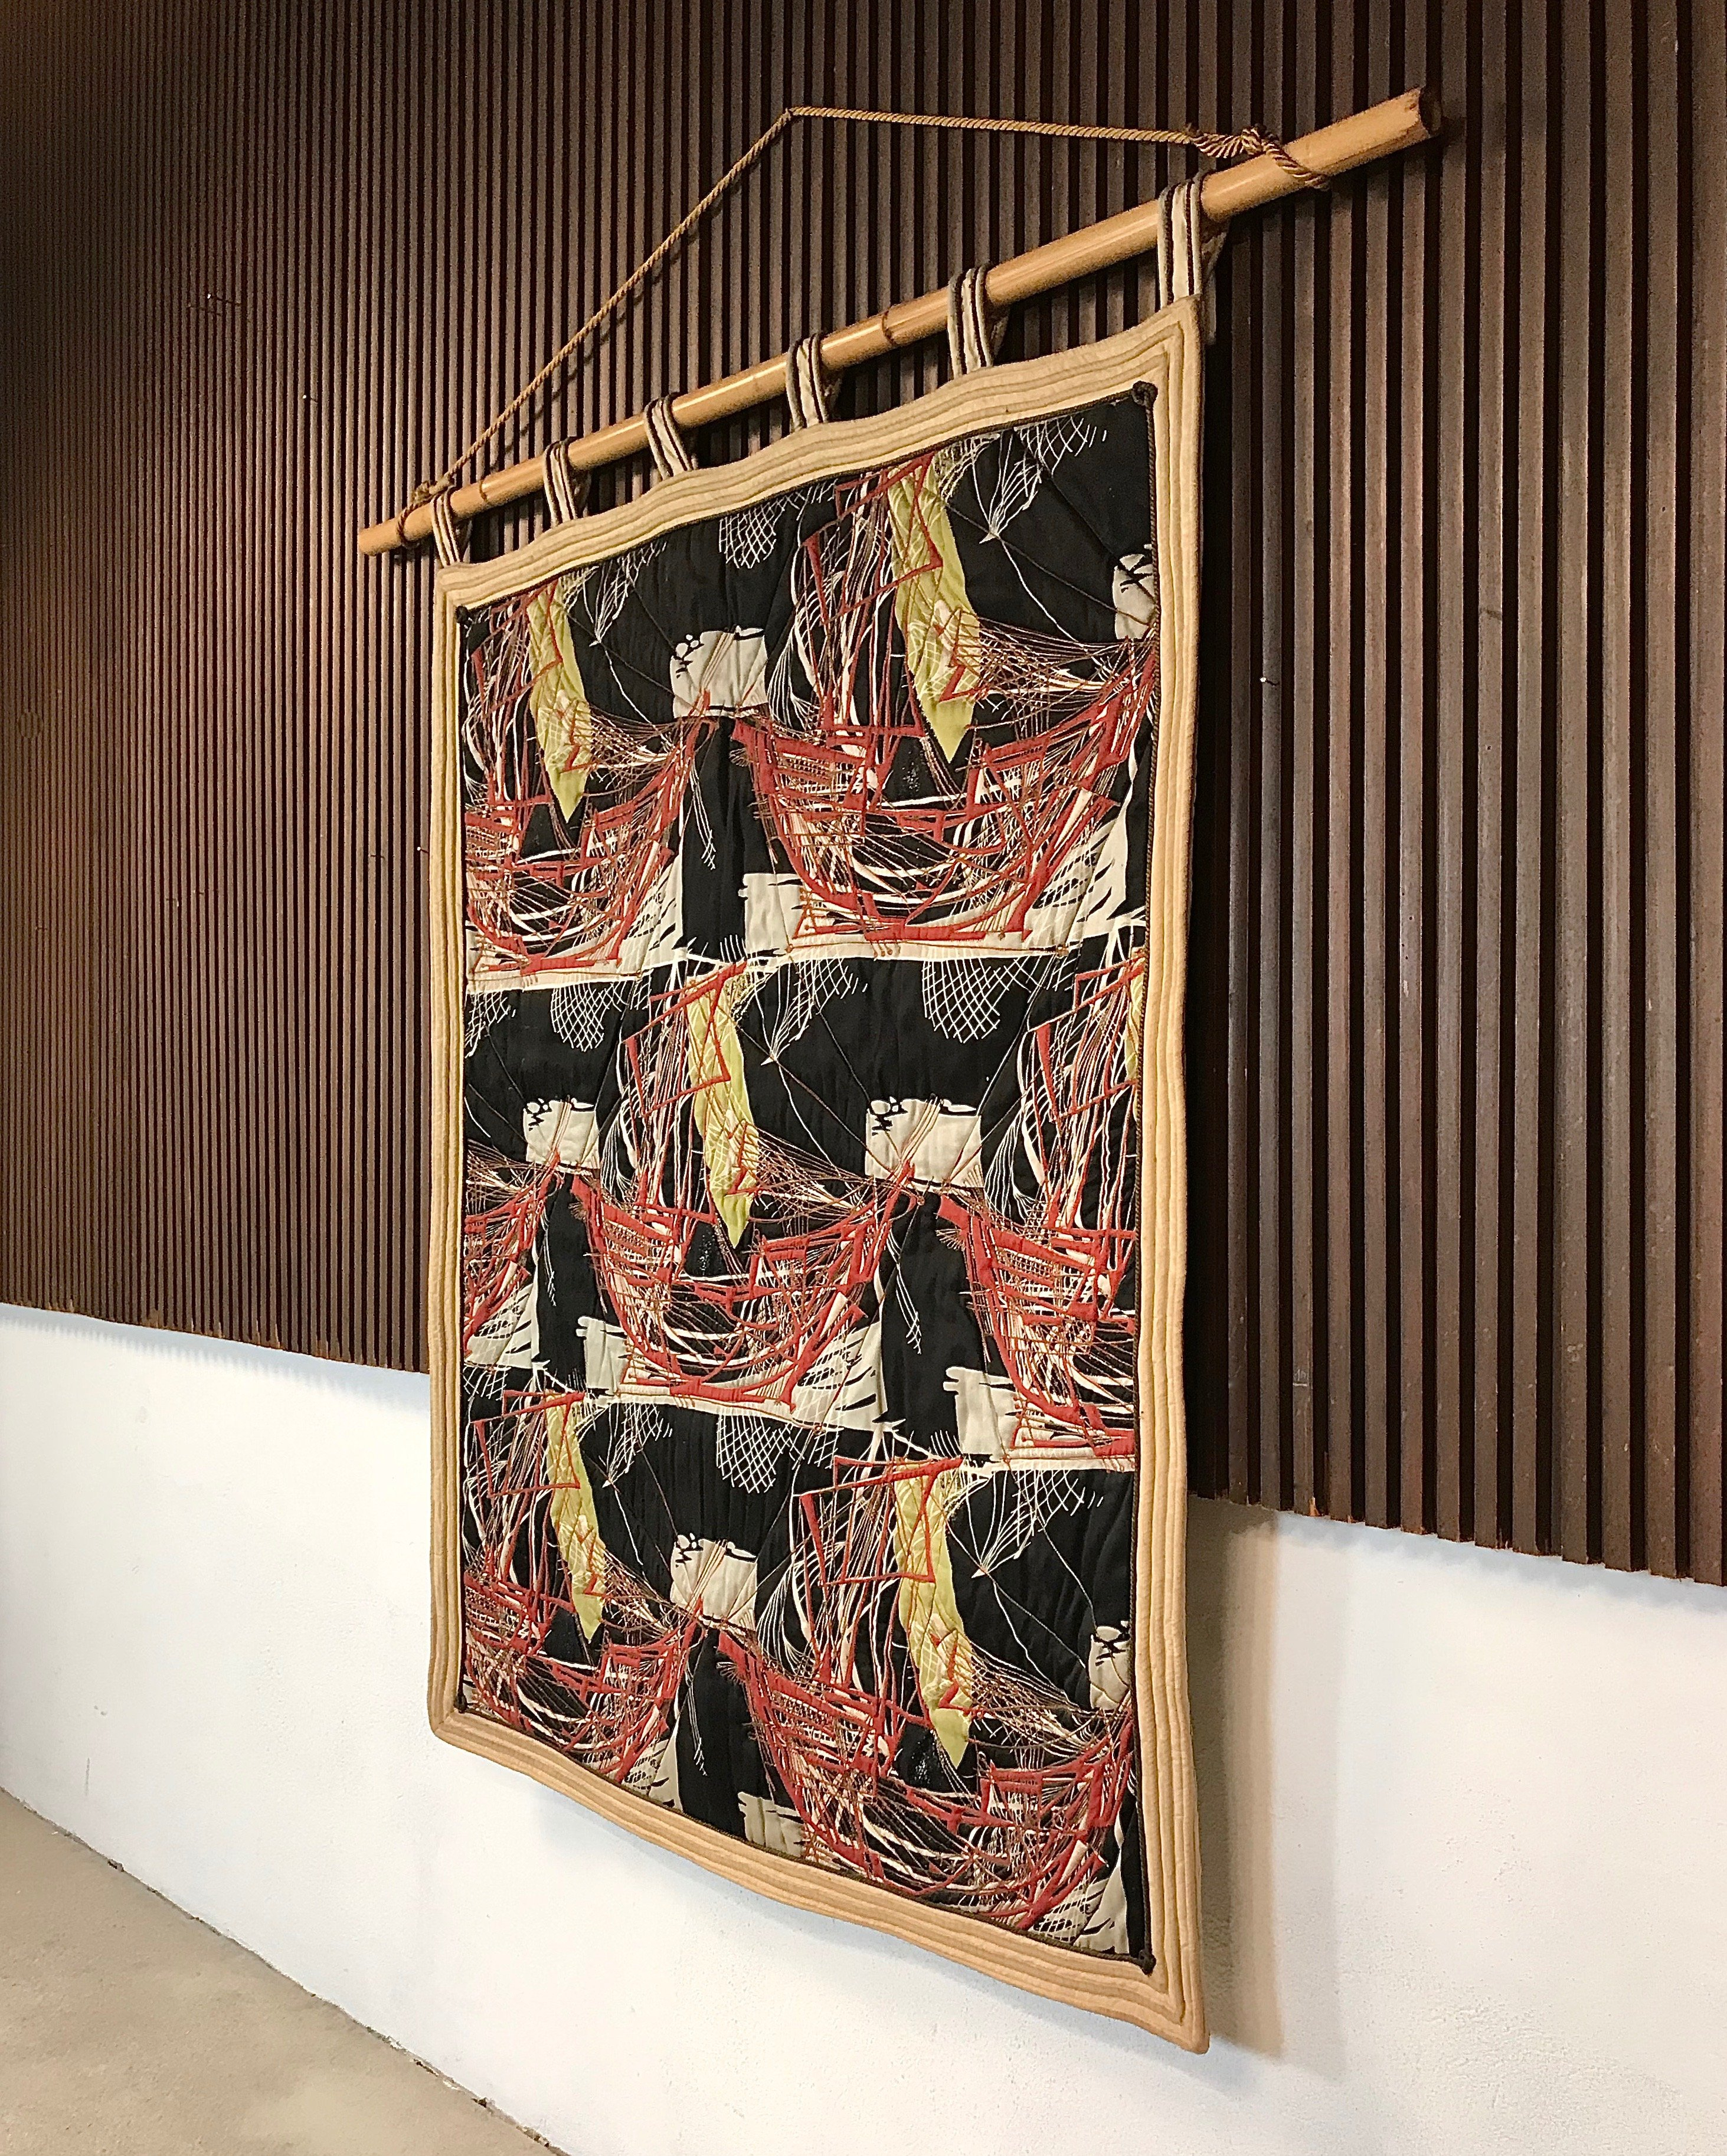 Large Italian Abstract Art Wall Hanging Tapestry With Bamboo Rod 1940s 114239